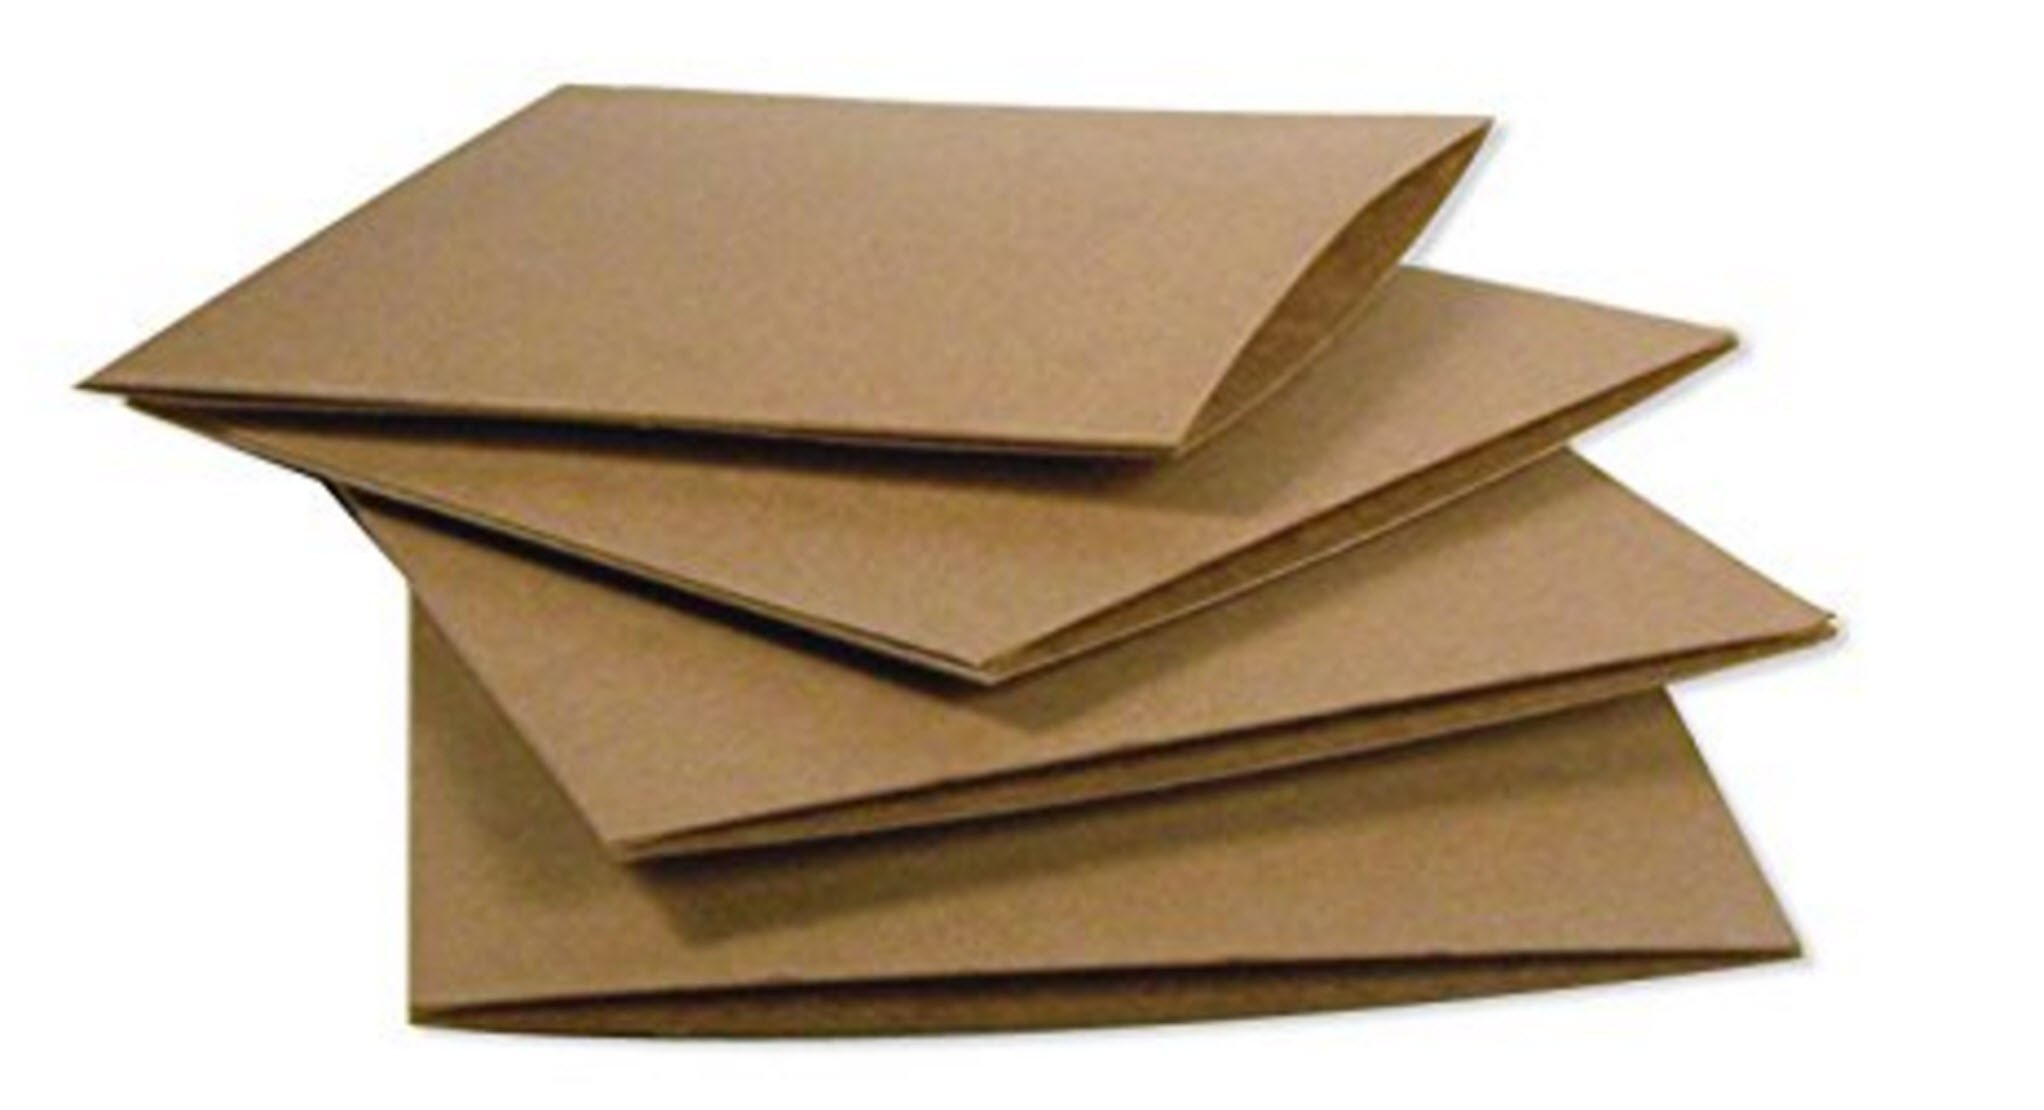 HOLIDAY CRAFTS - 50 Pack CD DVD Sleeves Envelope - Eco Recycled Case